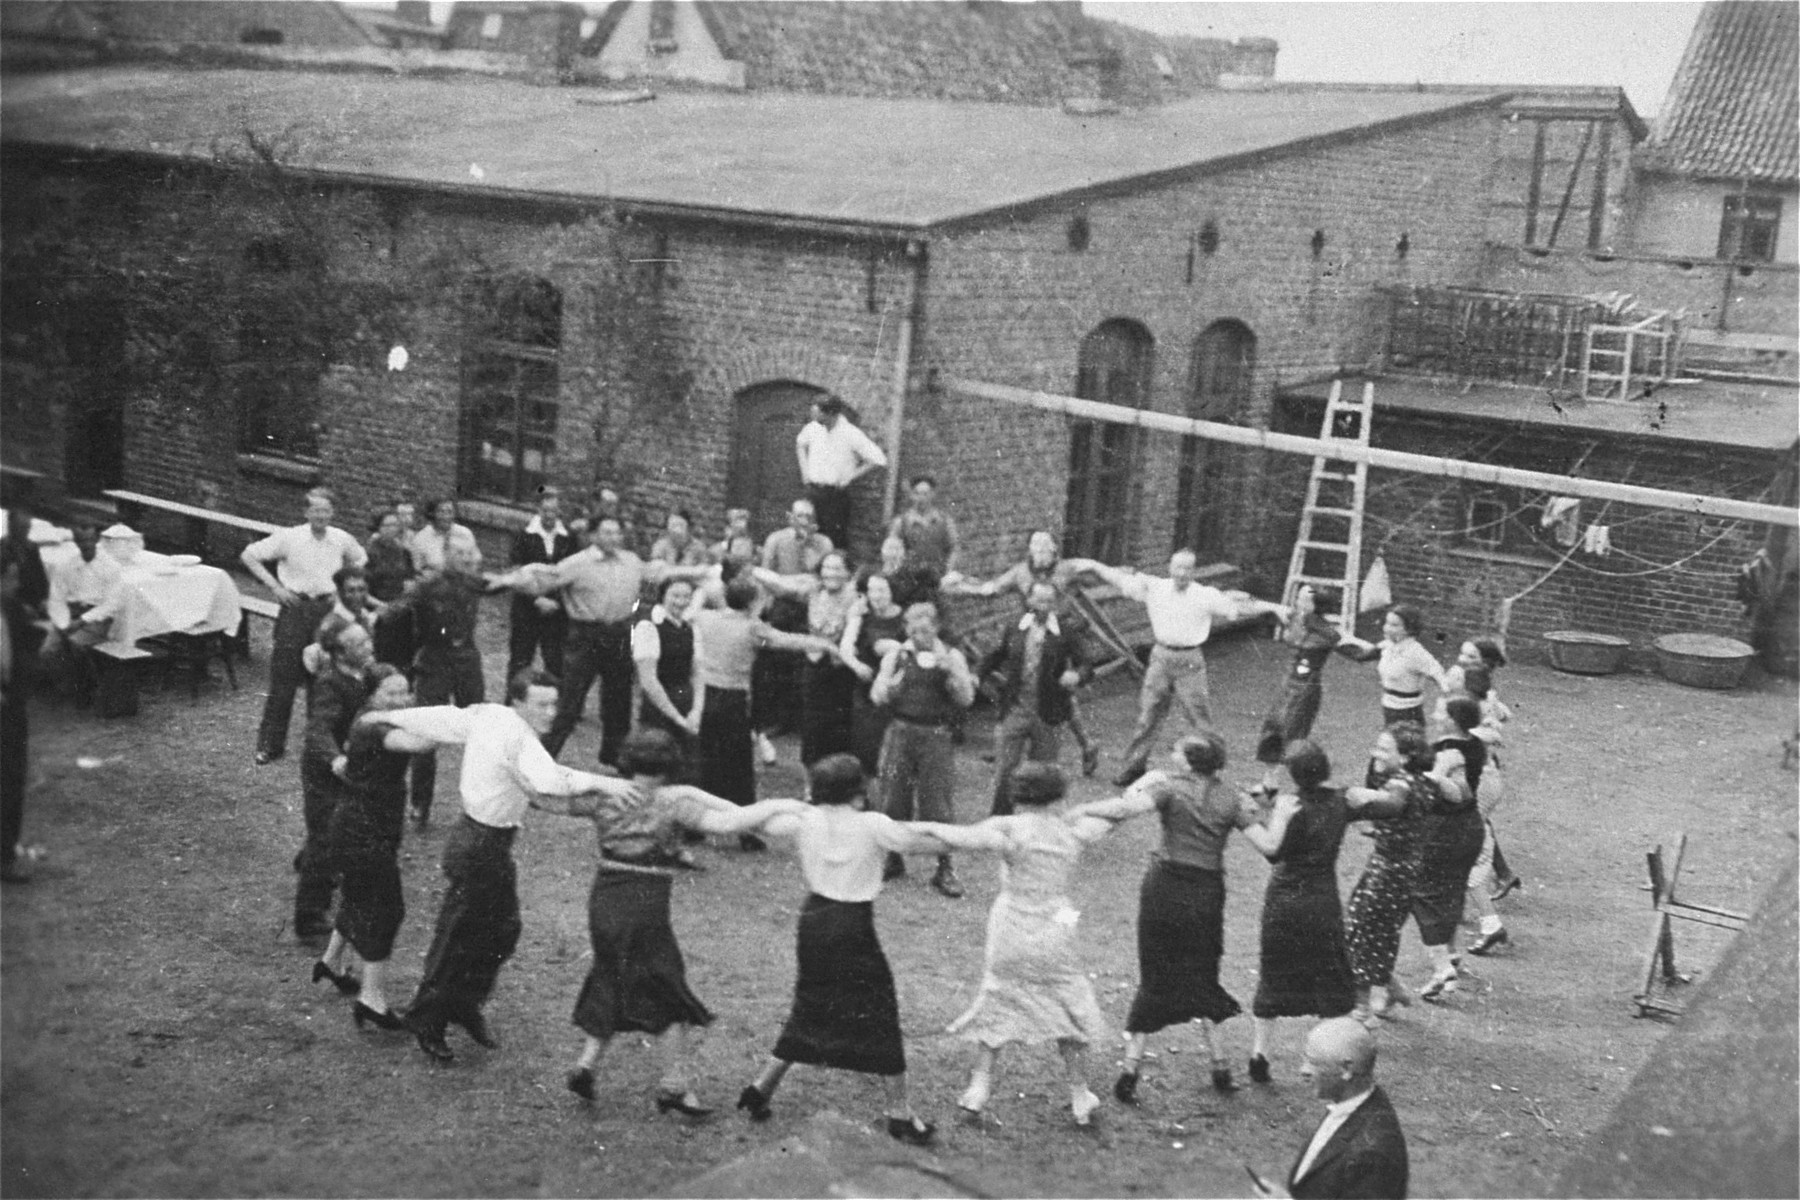 Members of a Zionist collective in Lithuania dance outside in a courtyard during a Shavout holiday celebration.